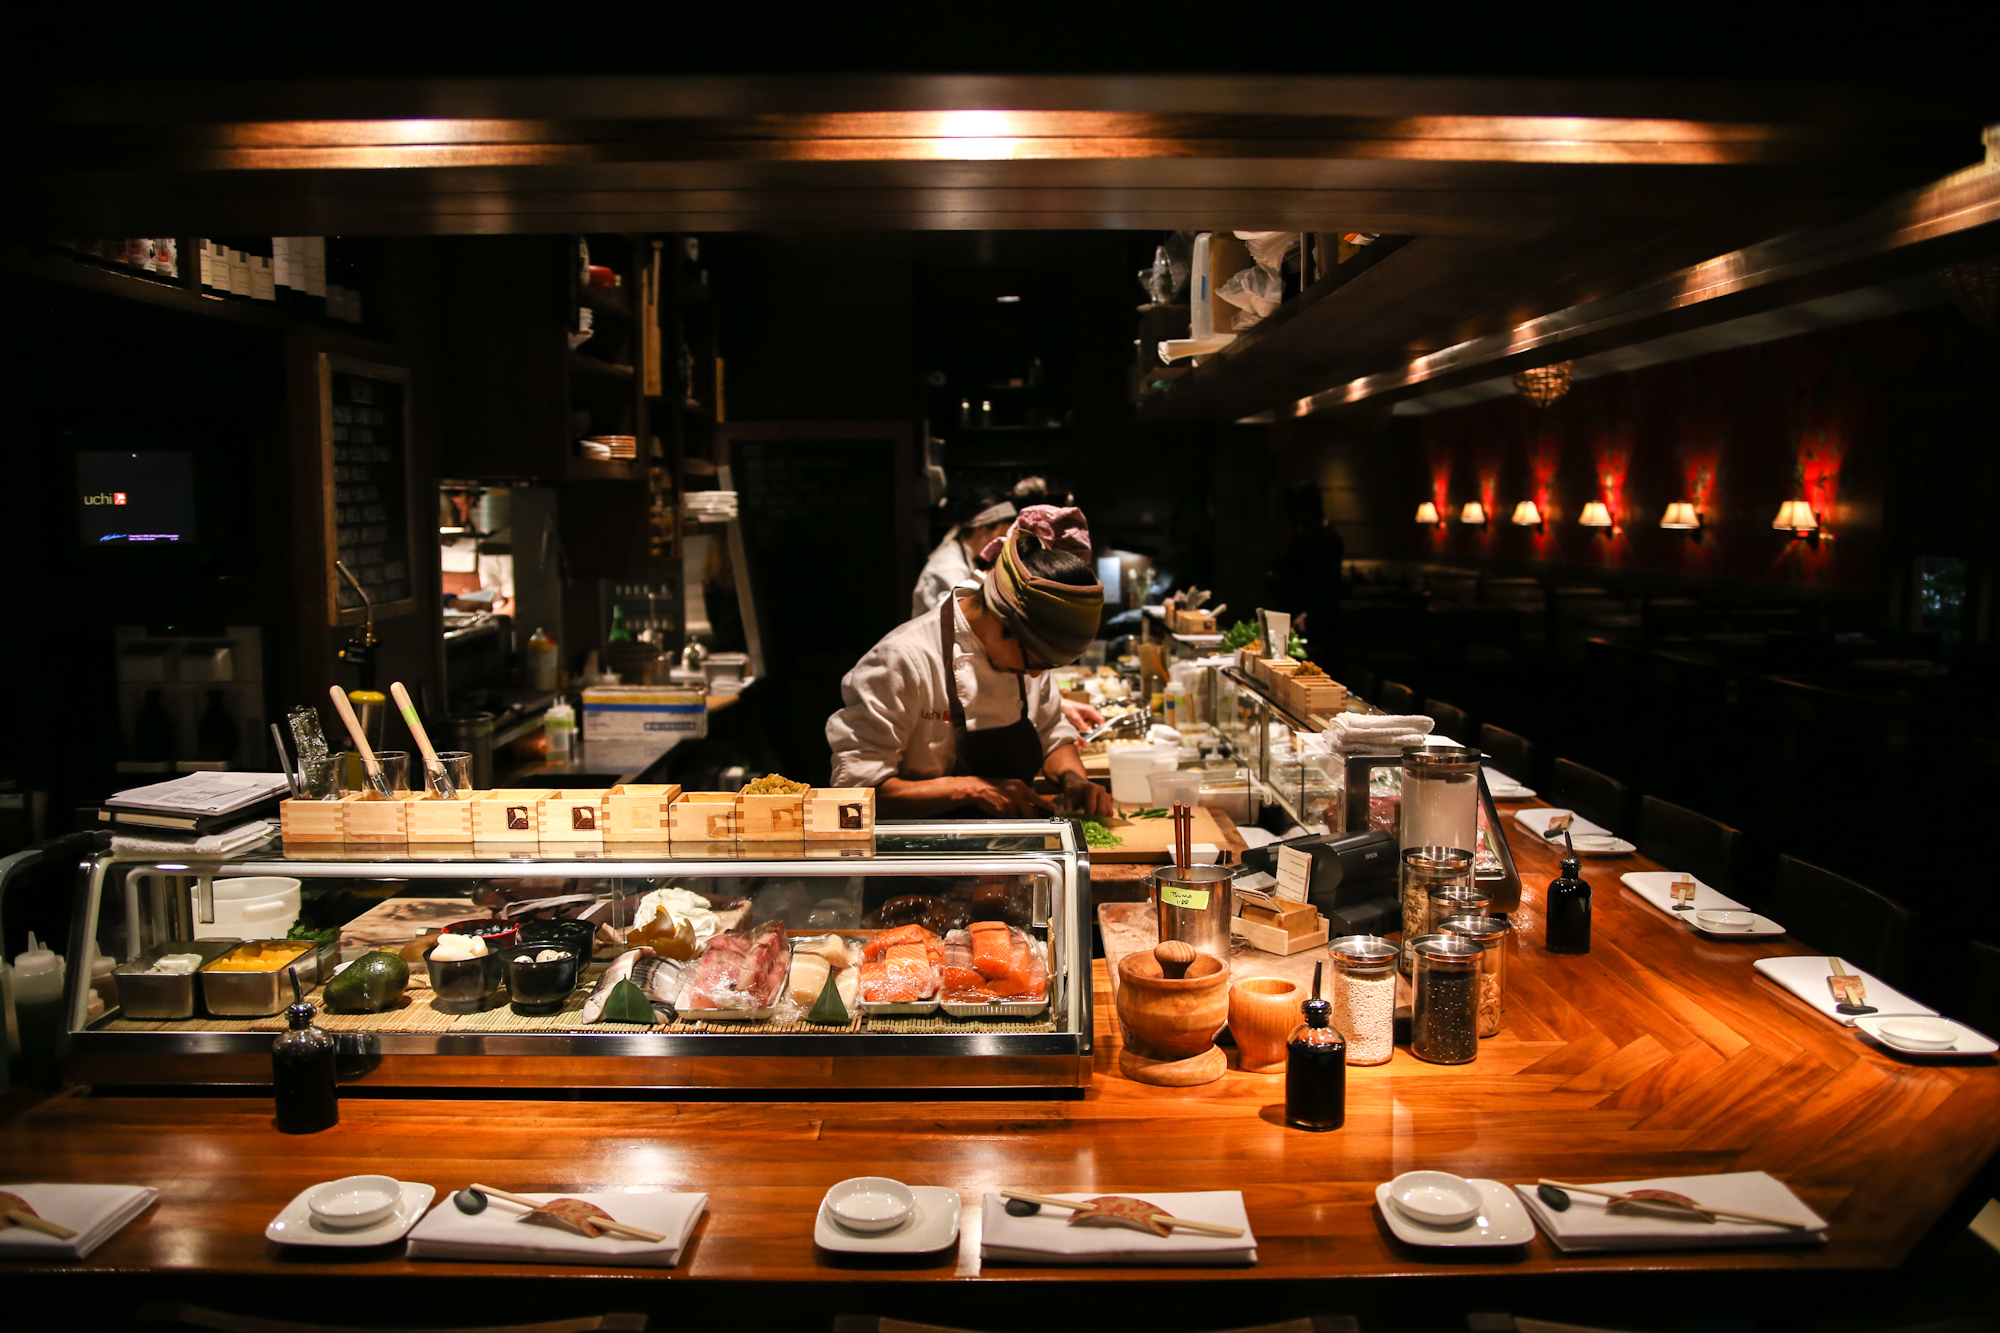 AN EXCLUSIVE LOOK INSIDE THE HIDDEN WORLD OF THE SUSHI CHEF  - THRILLIST